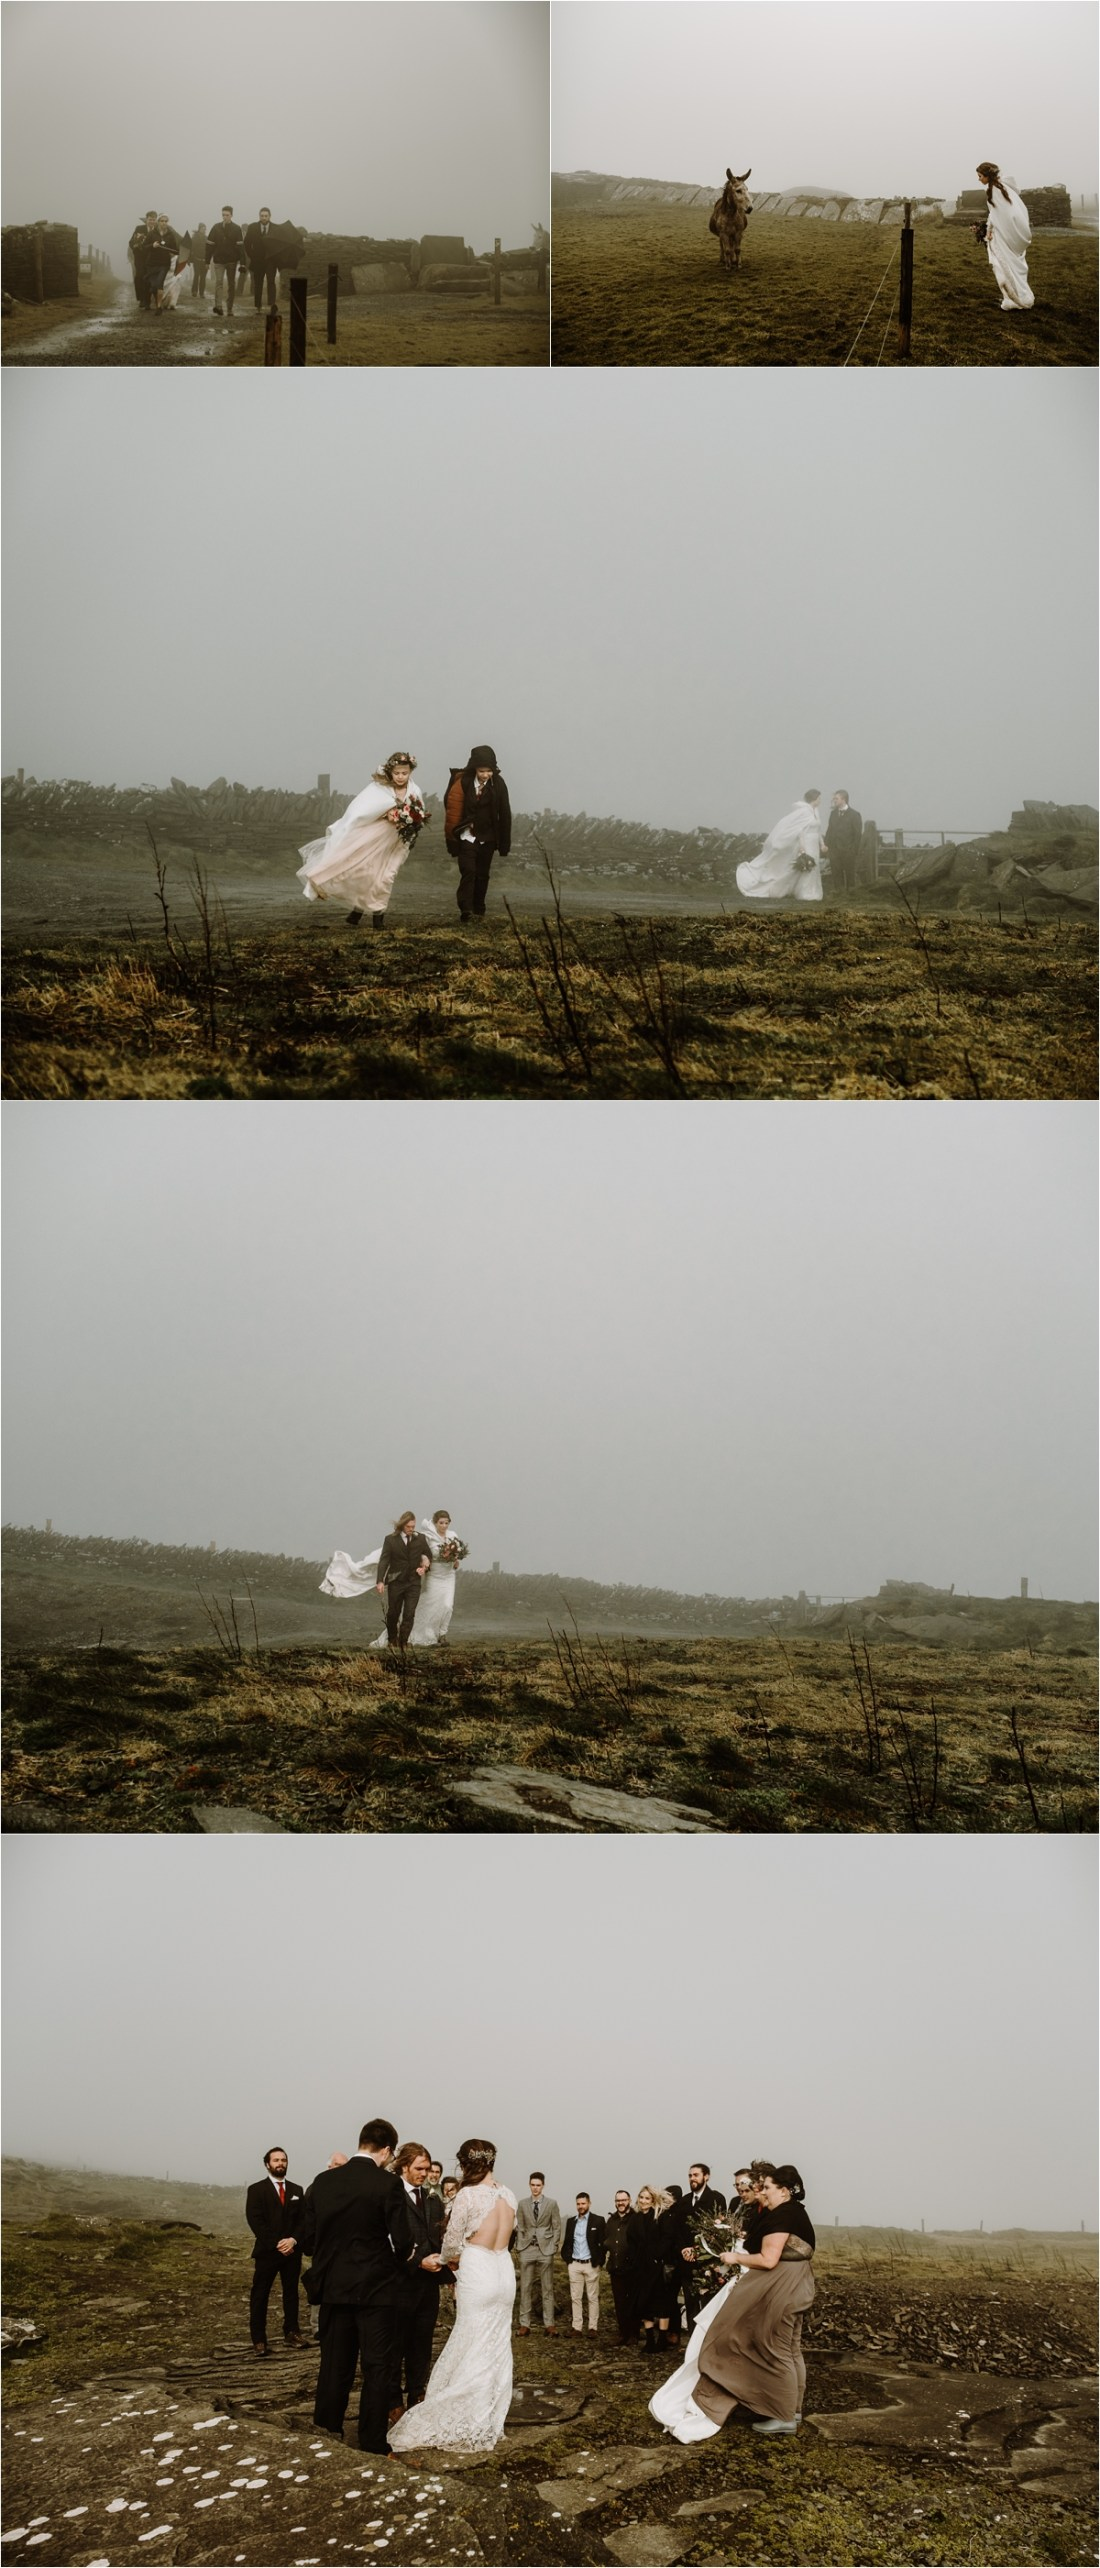 Elizabeth & Matthew arrive together for their elopement ceremony on the Cliffs of Moher in Ireland. Photos by Europe Elopement Photographer Wild Connections Photography